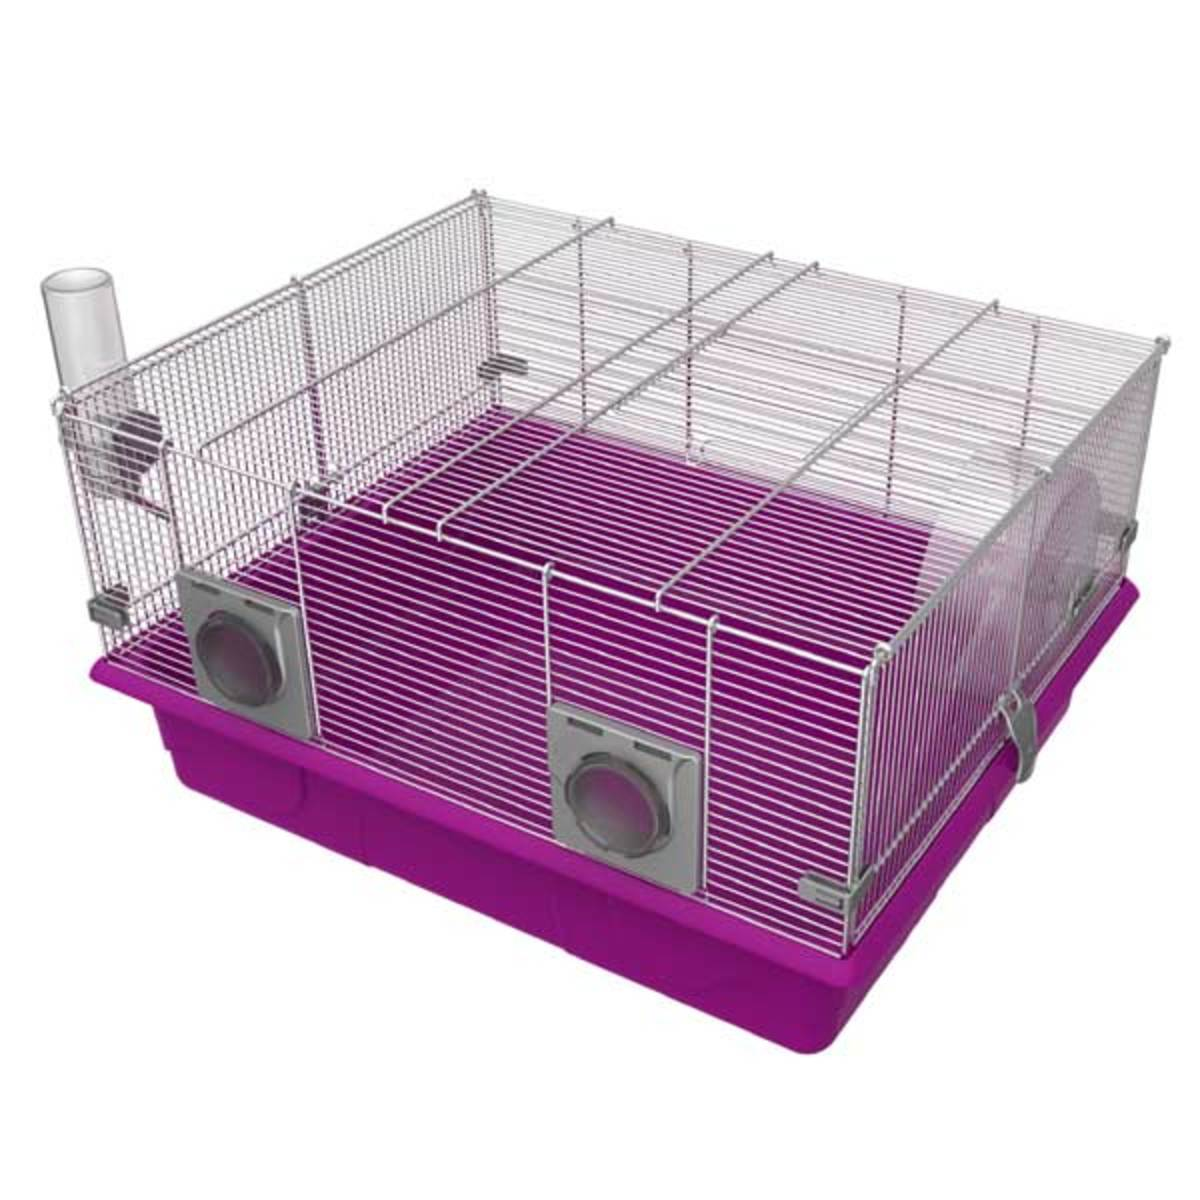 A good hamster cage suitable for smaller Syrian's and all other types of hamsters. These you can buy things to build up however you like and are of a decent size.